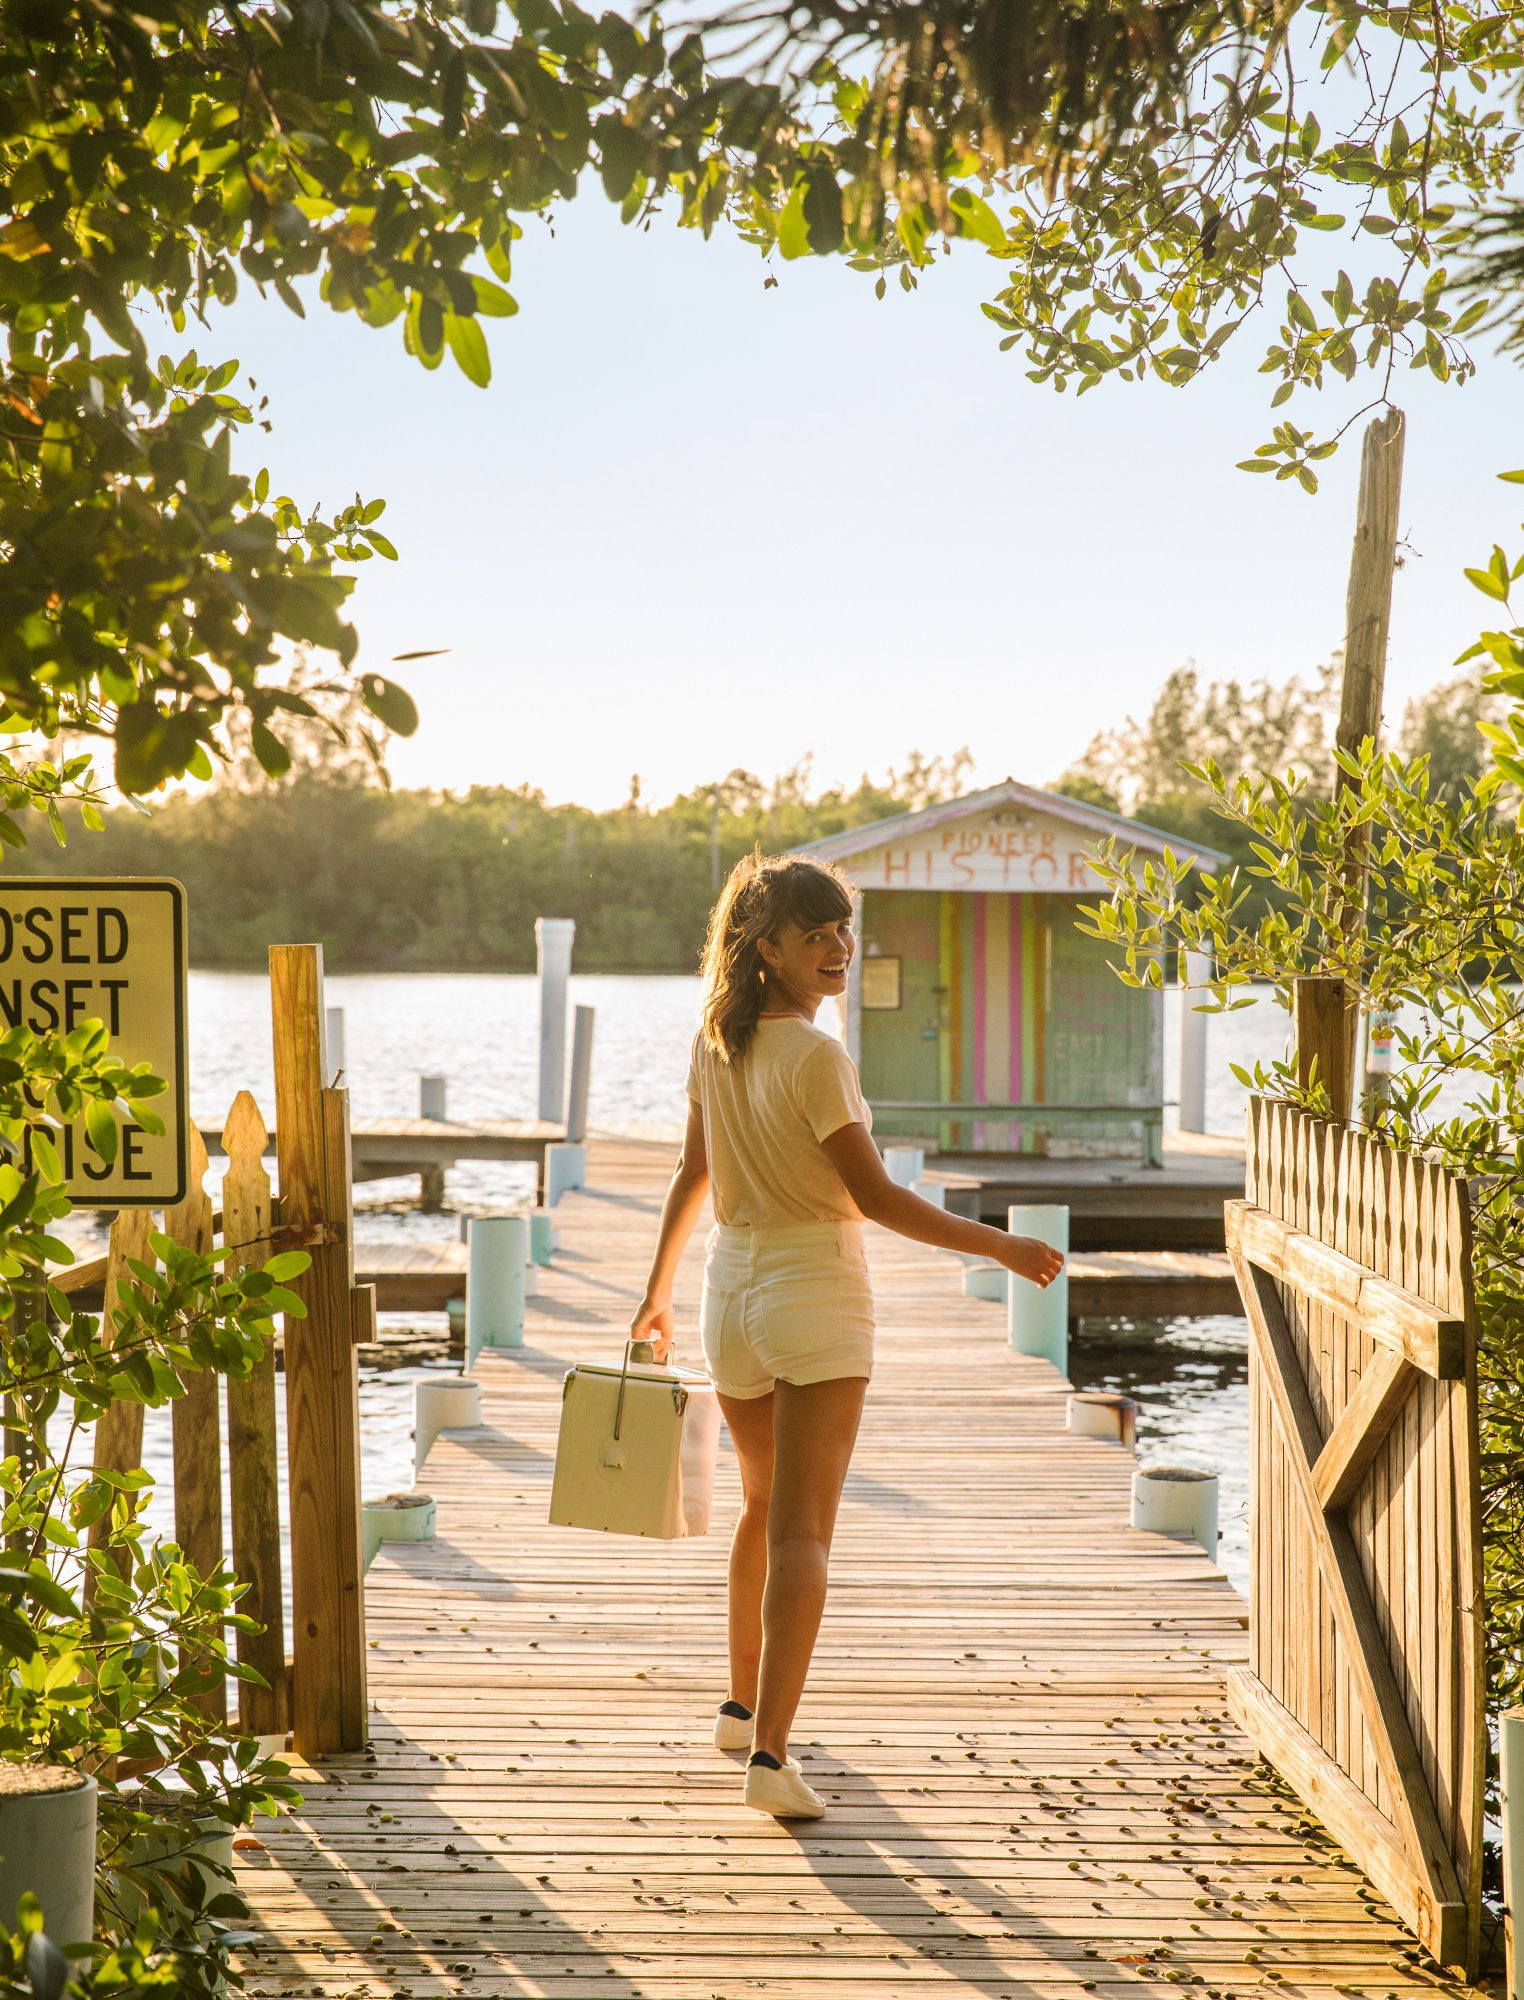 Vero Beach is Florida's Perfect Hideaway